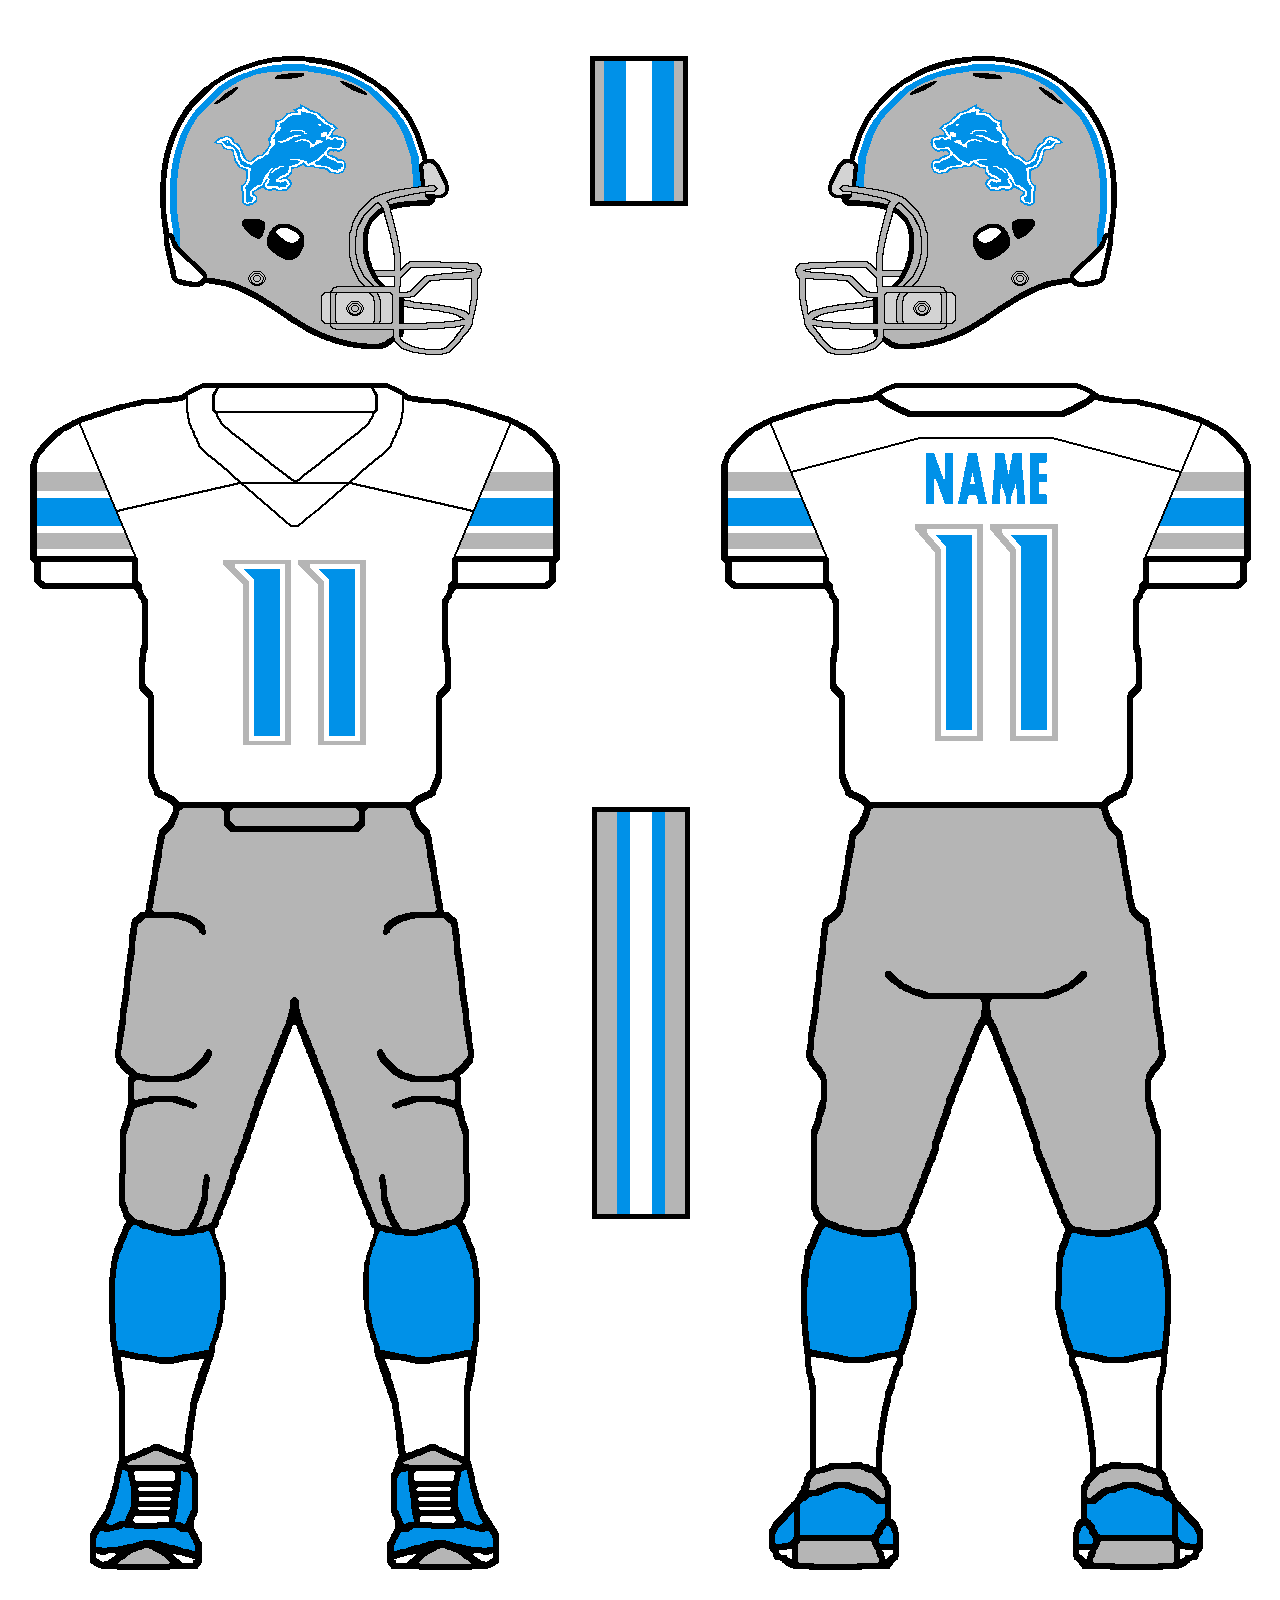 LIONS_ALTERNATE_2.png